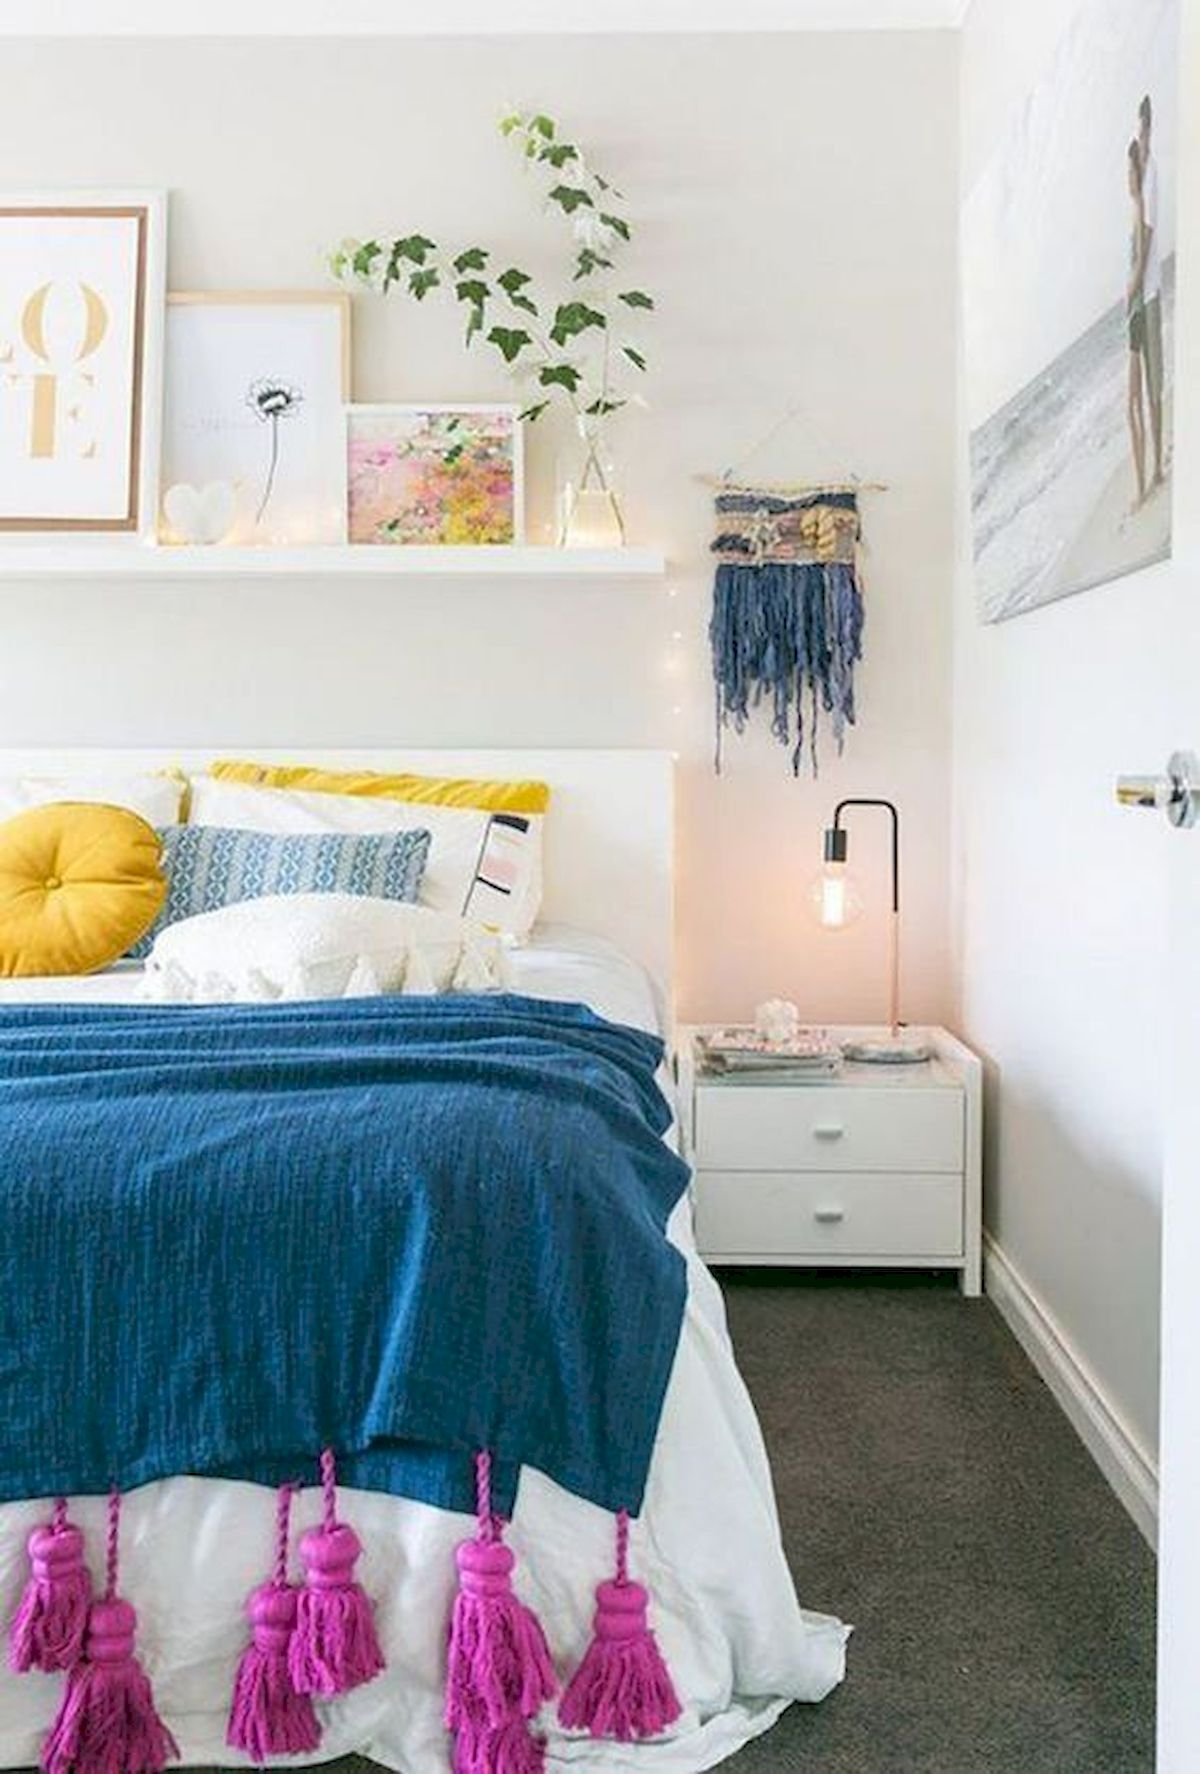 70 Awesome Colorful Bedroom Design Ideas and Remodel (37)